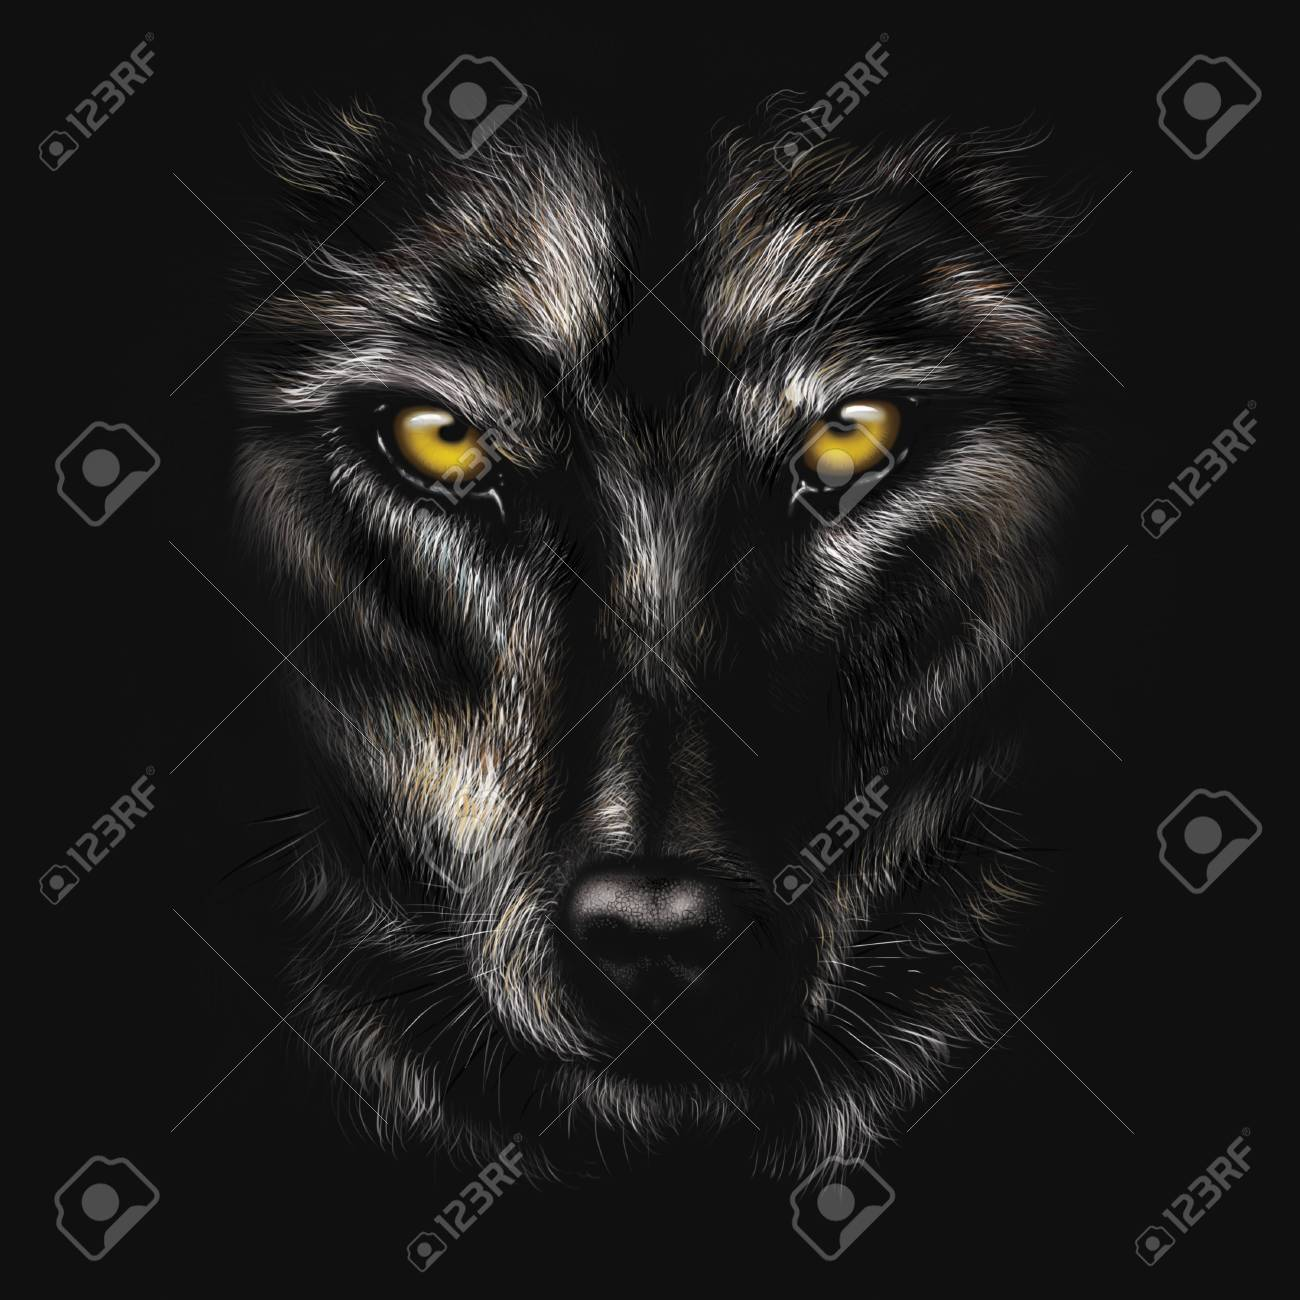 hand drawing portrait of a black wolf on a black background stock photo picture and royalty free image image 94320755 hand drawing portrait of a black wolf on a black background